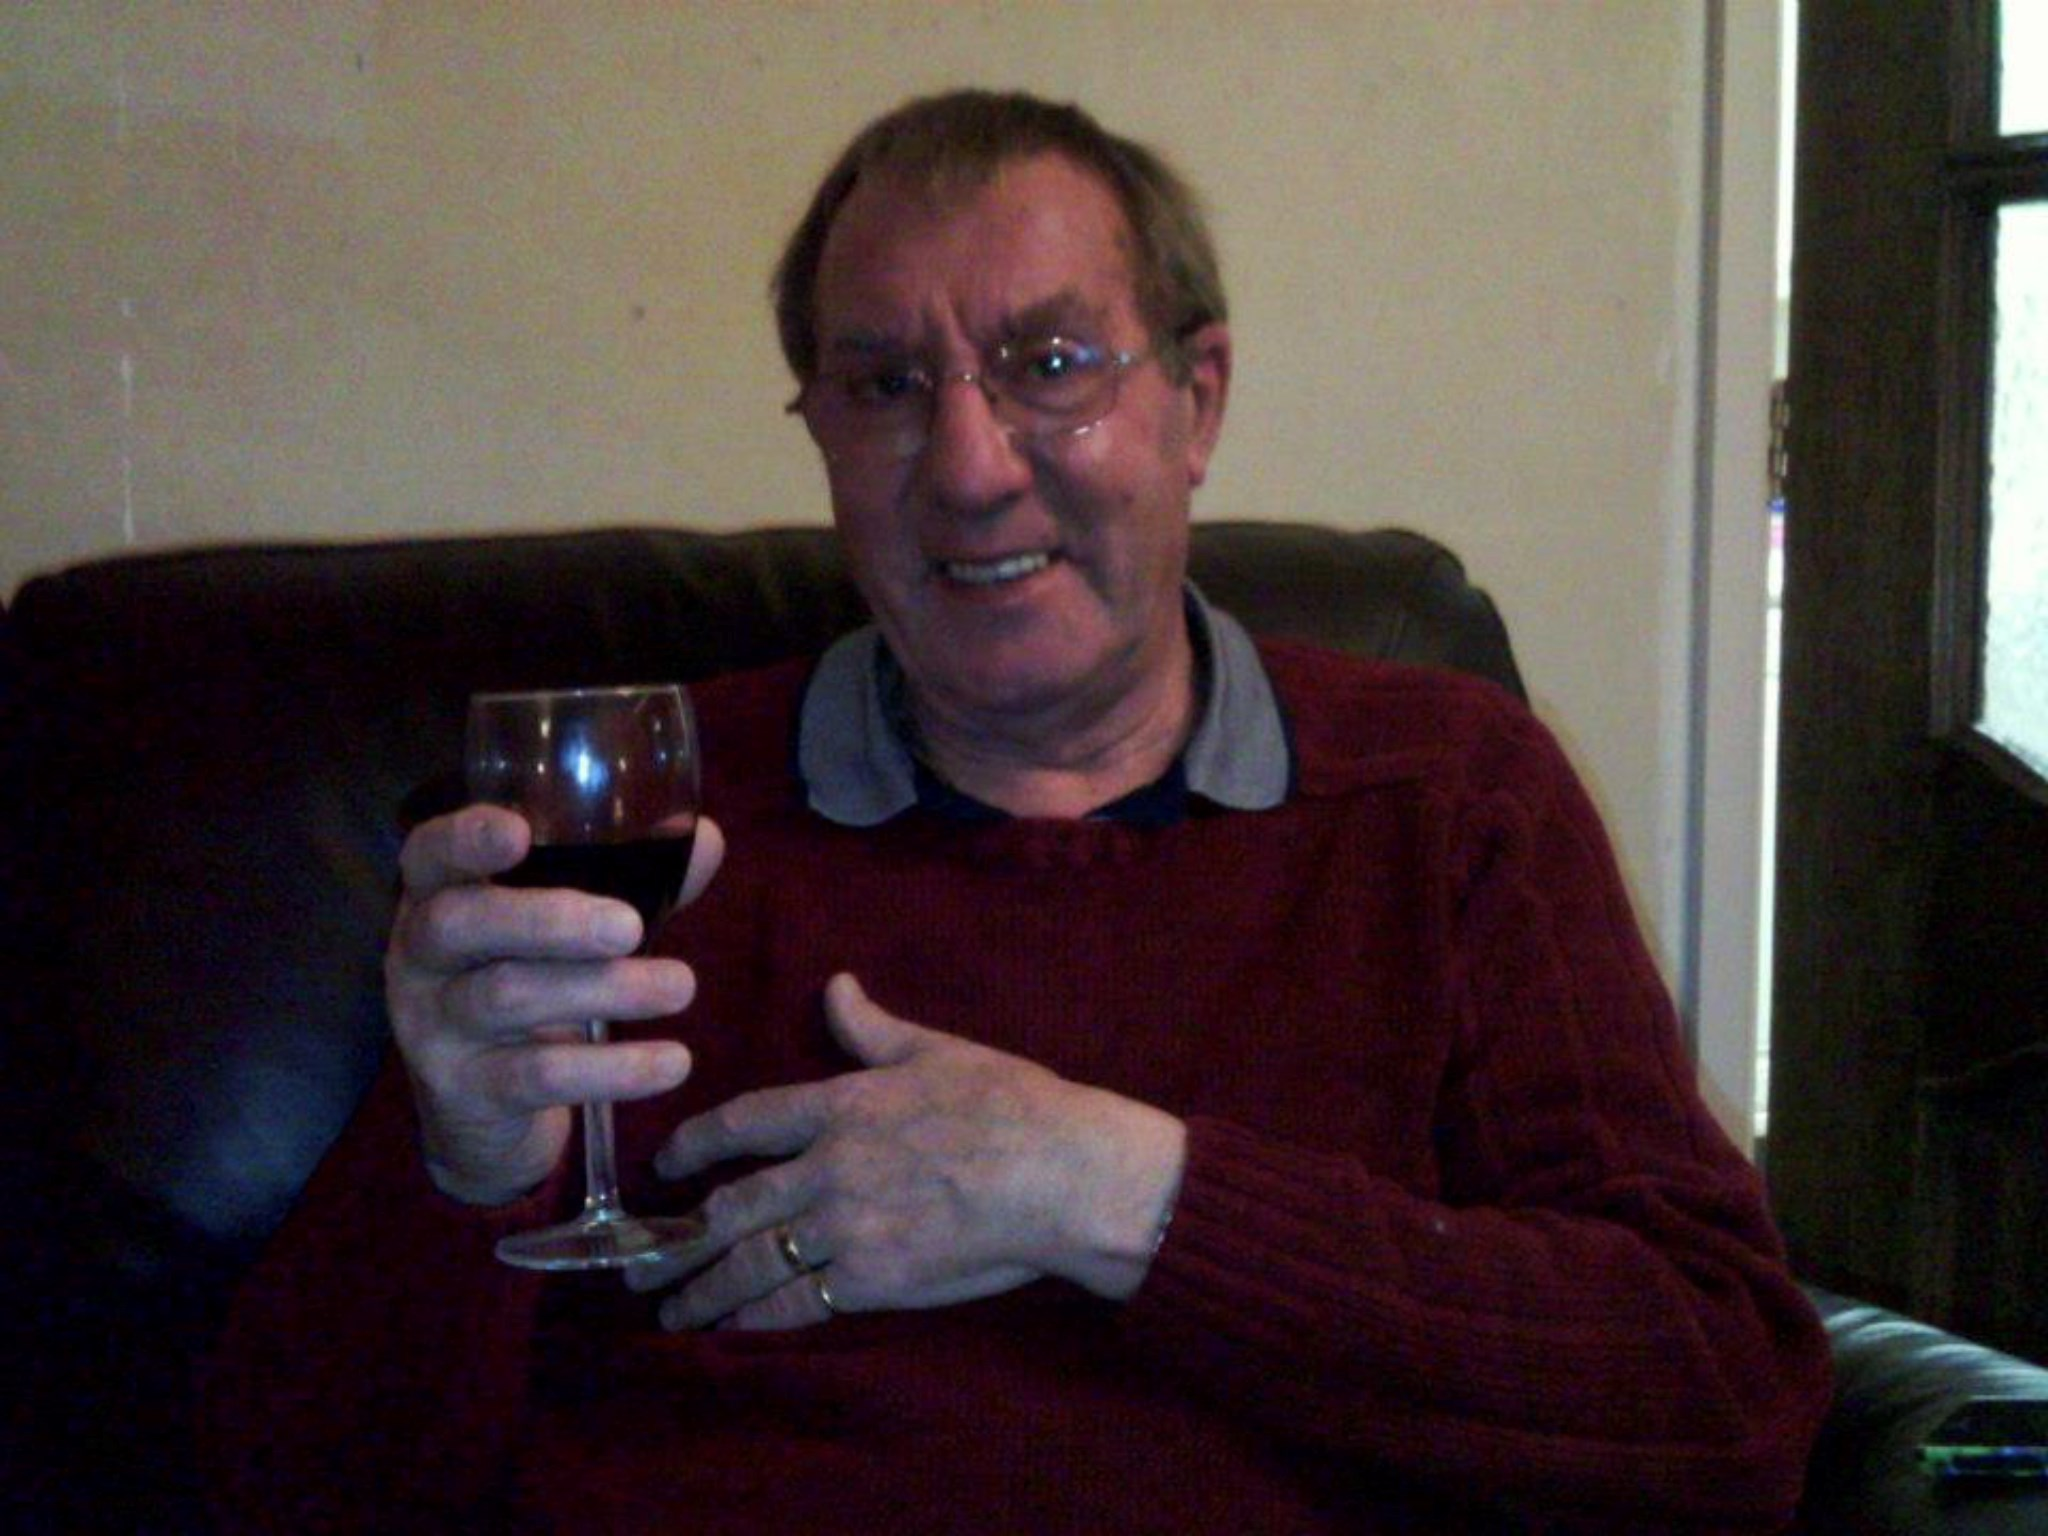 27th December 2013 This is how I will remember Dave, with love and a glass of red. CHEERS X